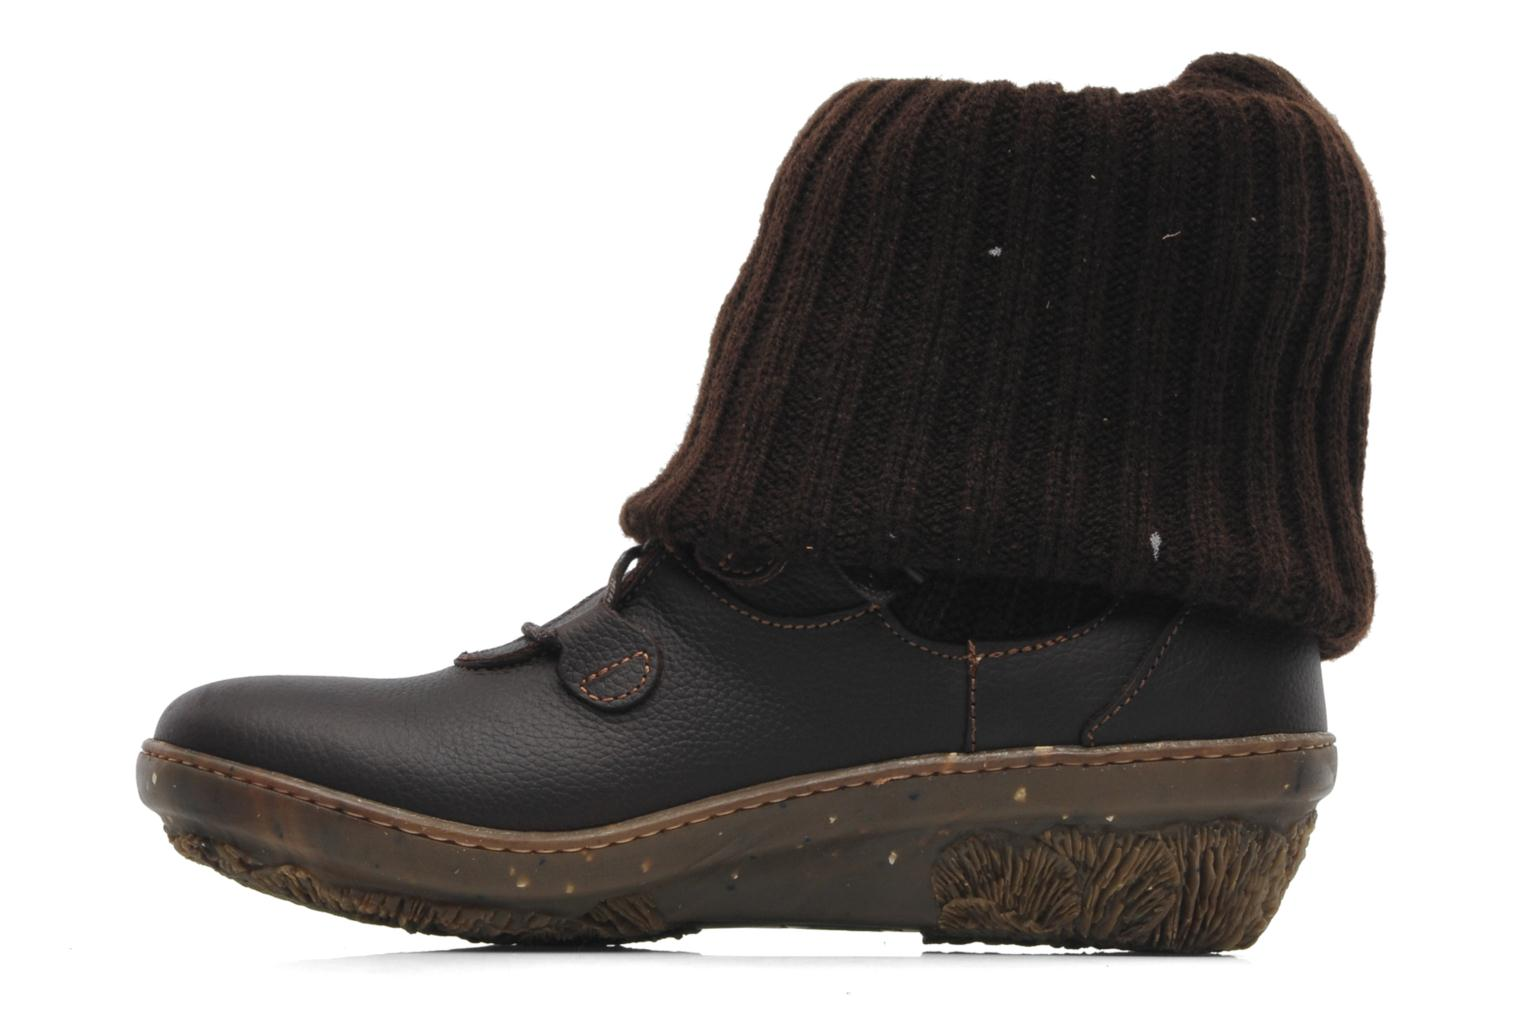 Bottines et boots El Naturalista Funghi N°381 Marron vue face